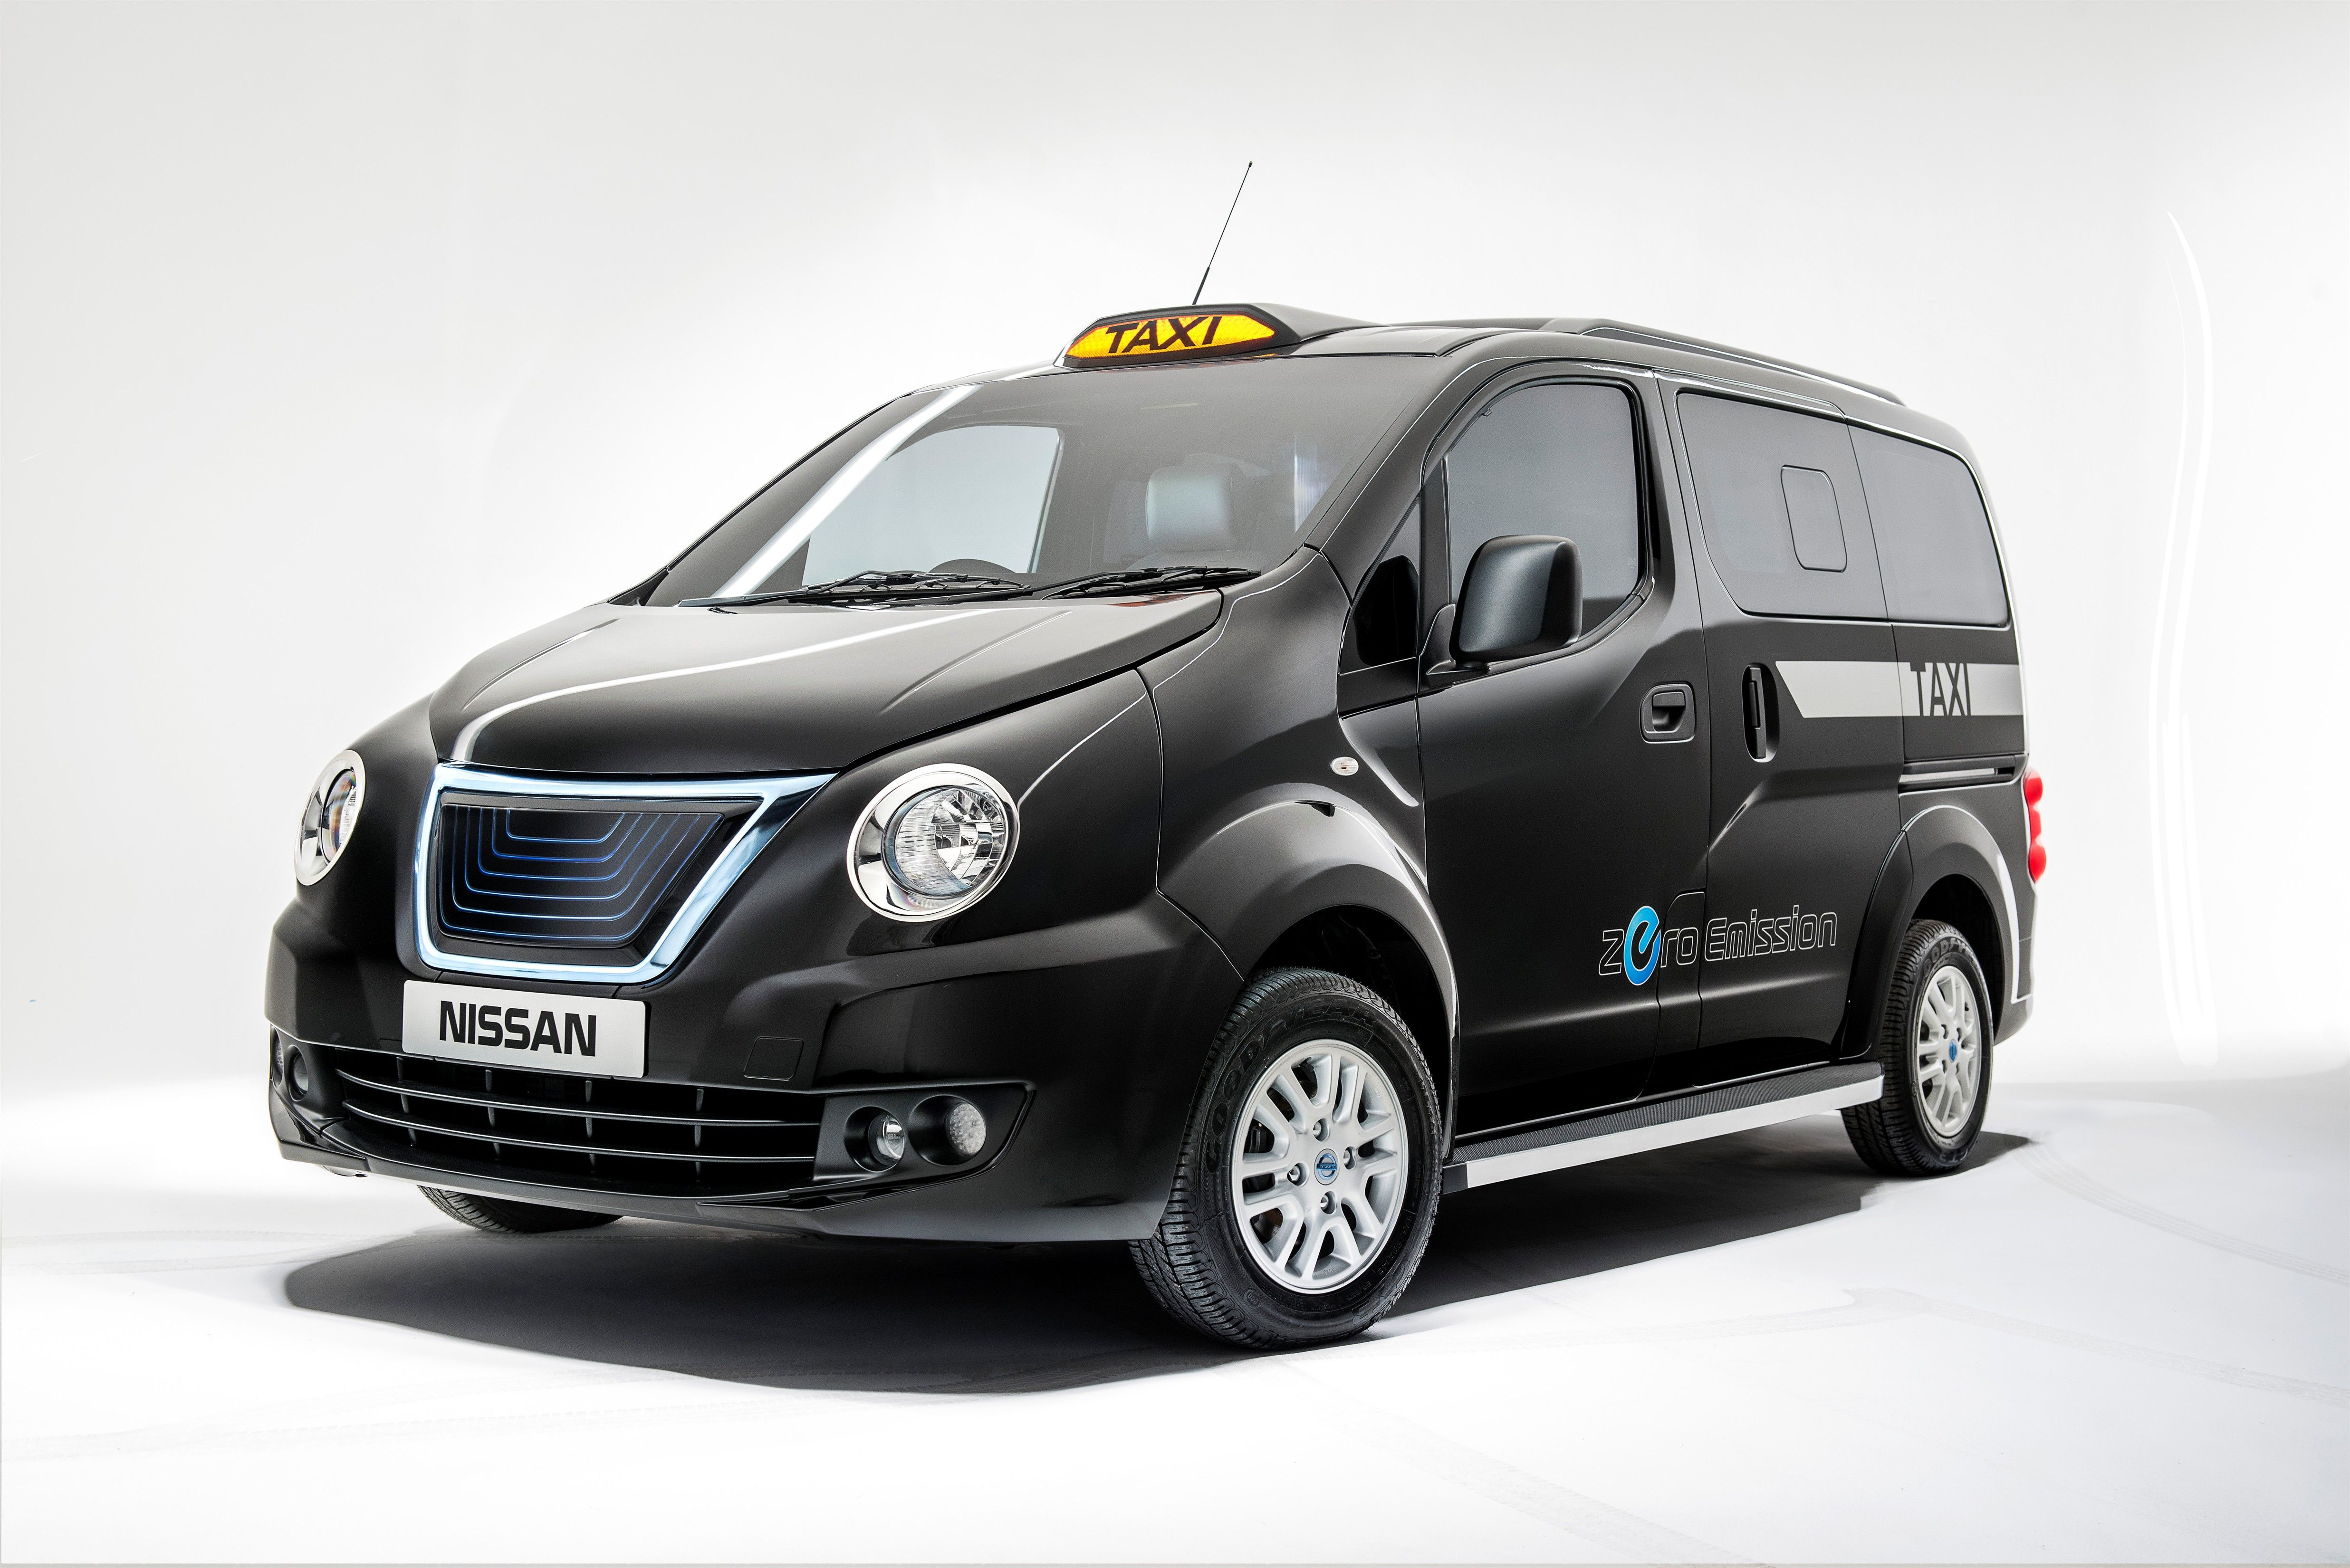 Nissan Gives NV200 Taxi an Iconic Look for the UK